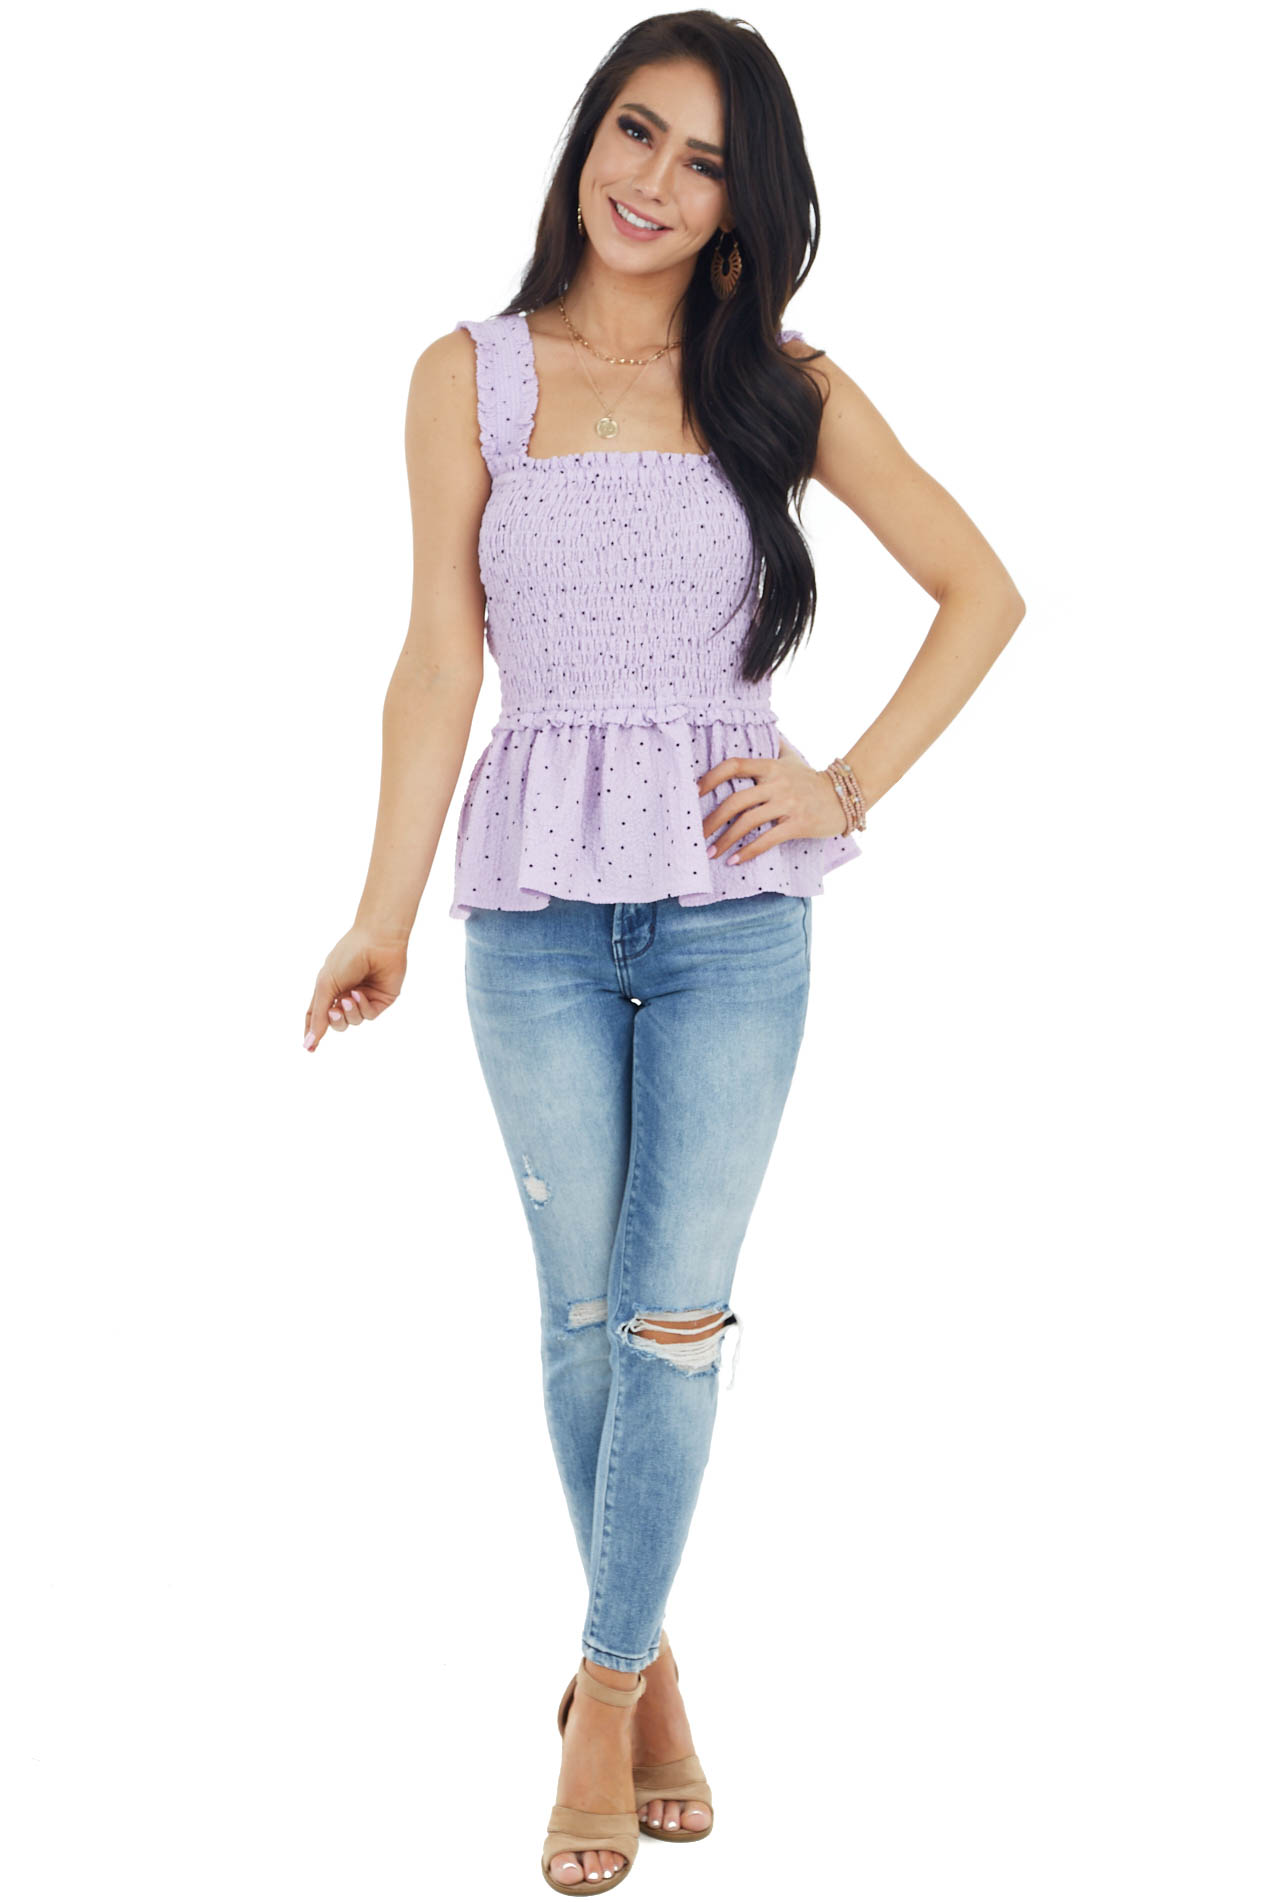 Lilac and Black Polka Dot Cropped Tank Top with Smocked Bust